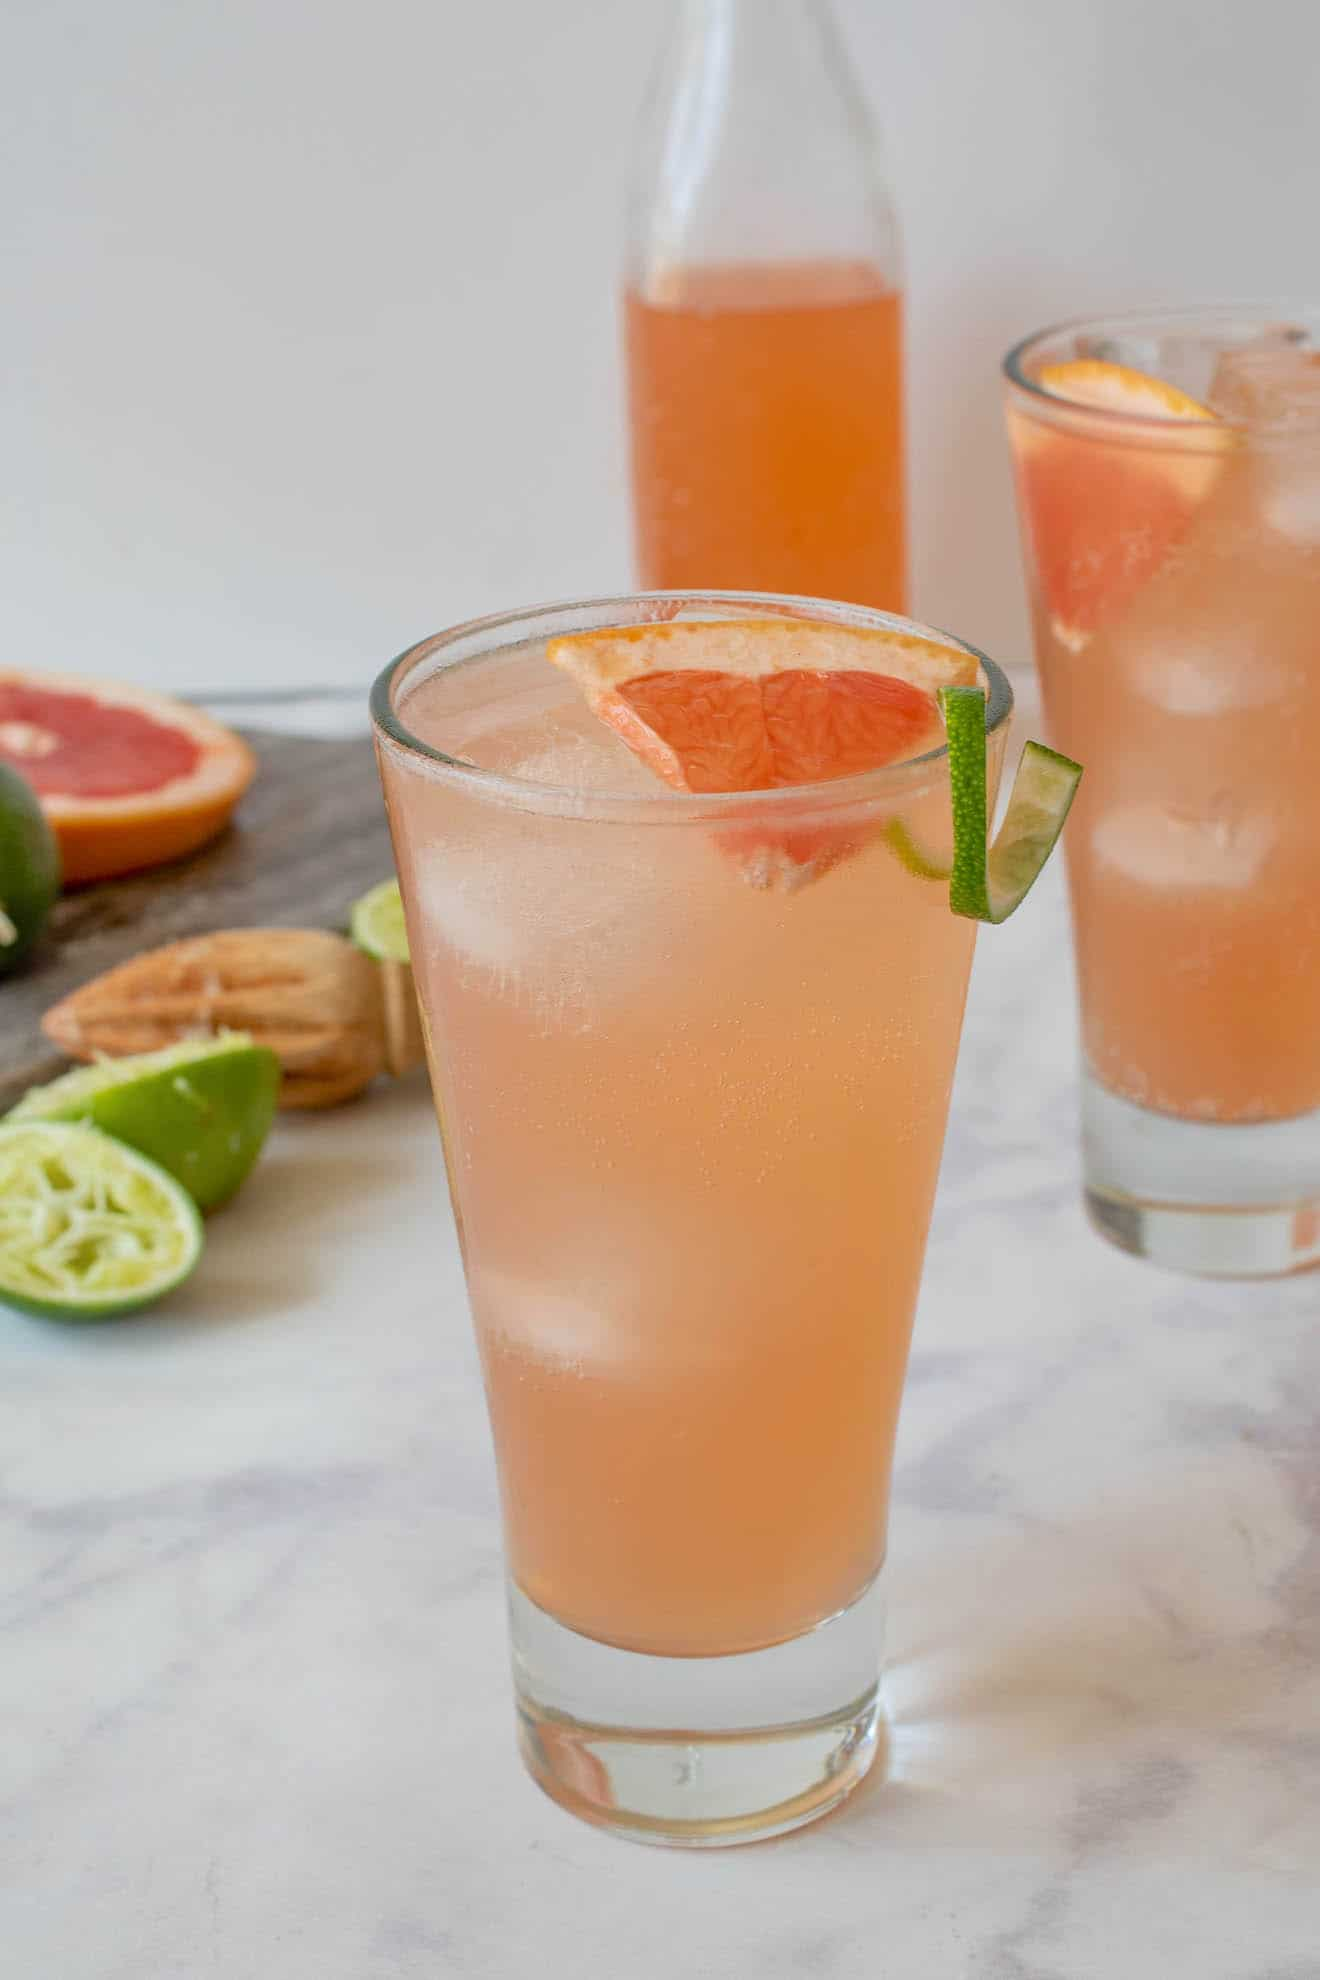 A tall glass of tequila Paloma garnished with a wedge of fresh grapefruit and lime rind